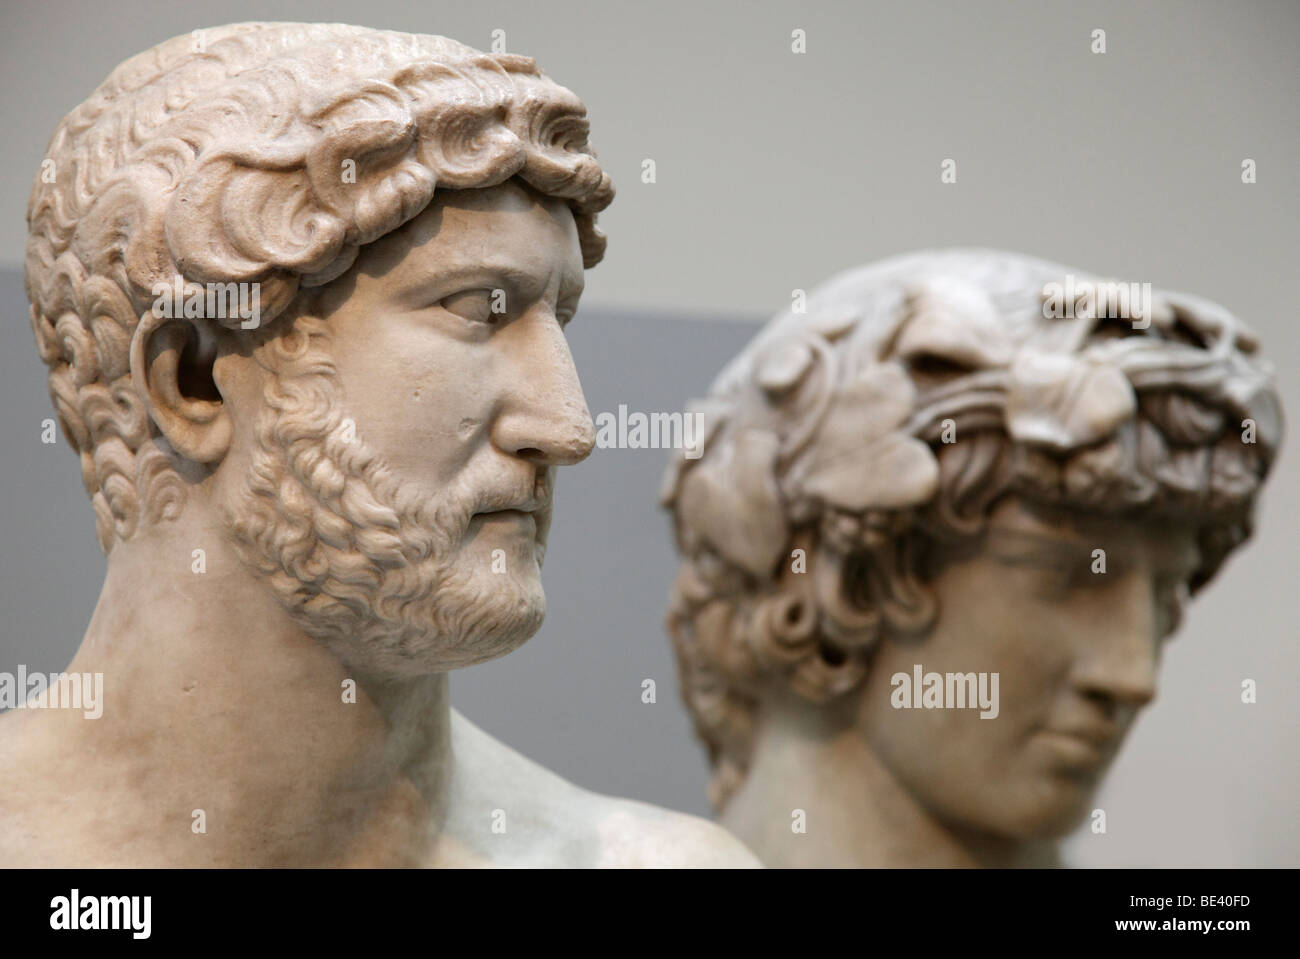 Marble busts of the Emperor Hadrian and his lover Antinous- the British Museum - Stock Image